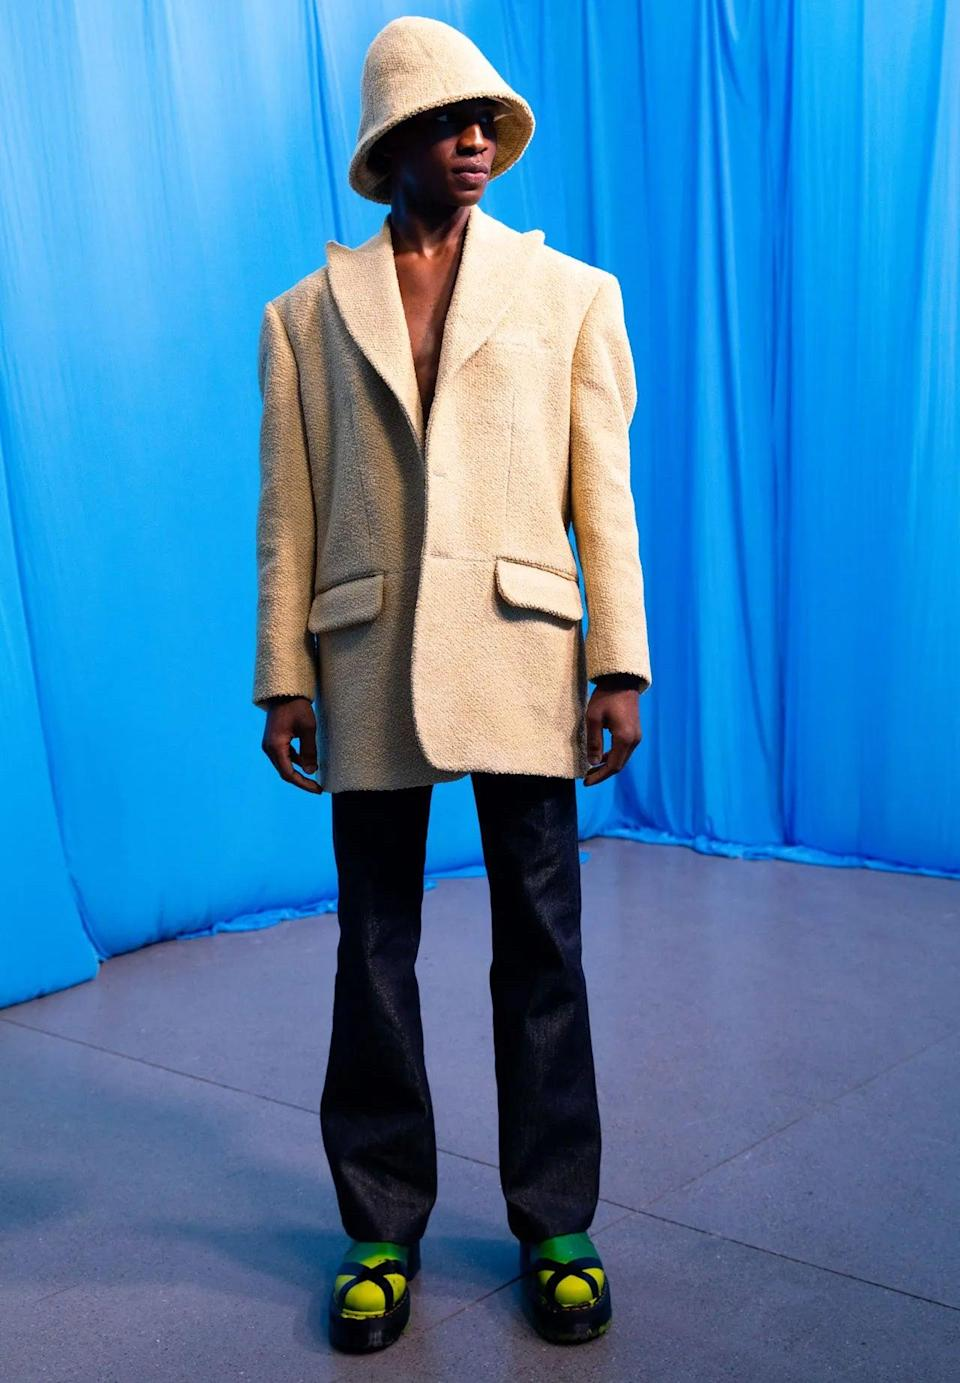 """<strong><h2>Theophilio</h2></strong>Edvin Thompson's Theophilo carries his Jamaican DNA throughout the line. Named after the designer's middle name, the brand is full of vibrant mesh and leather pieces. The Brooklyn-based designer is also a 2021 CFDA/Fashion Fund winner.<br><br><em>Shop <a href=""""https://theophilio.com/"""" rel=""""nofollow noopener"""" target=""""_blank"""" data-ylk=""""slk:Theophilio"""" class=""""link rapid-noclick-resp"""">Theophilio</a></em><br>"""